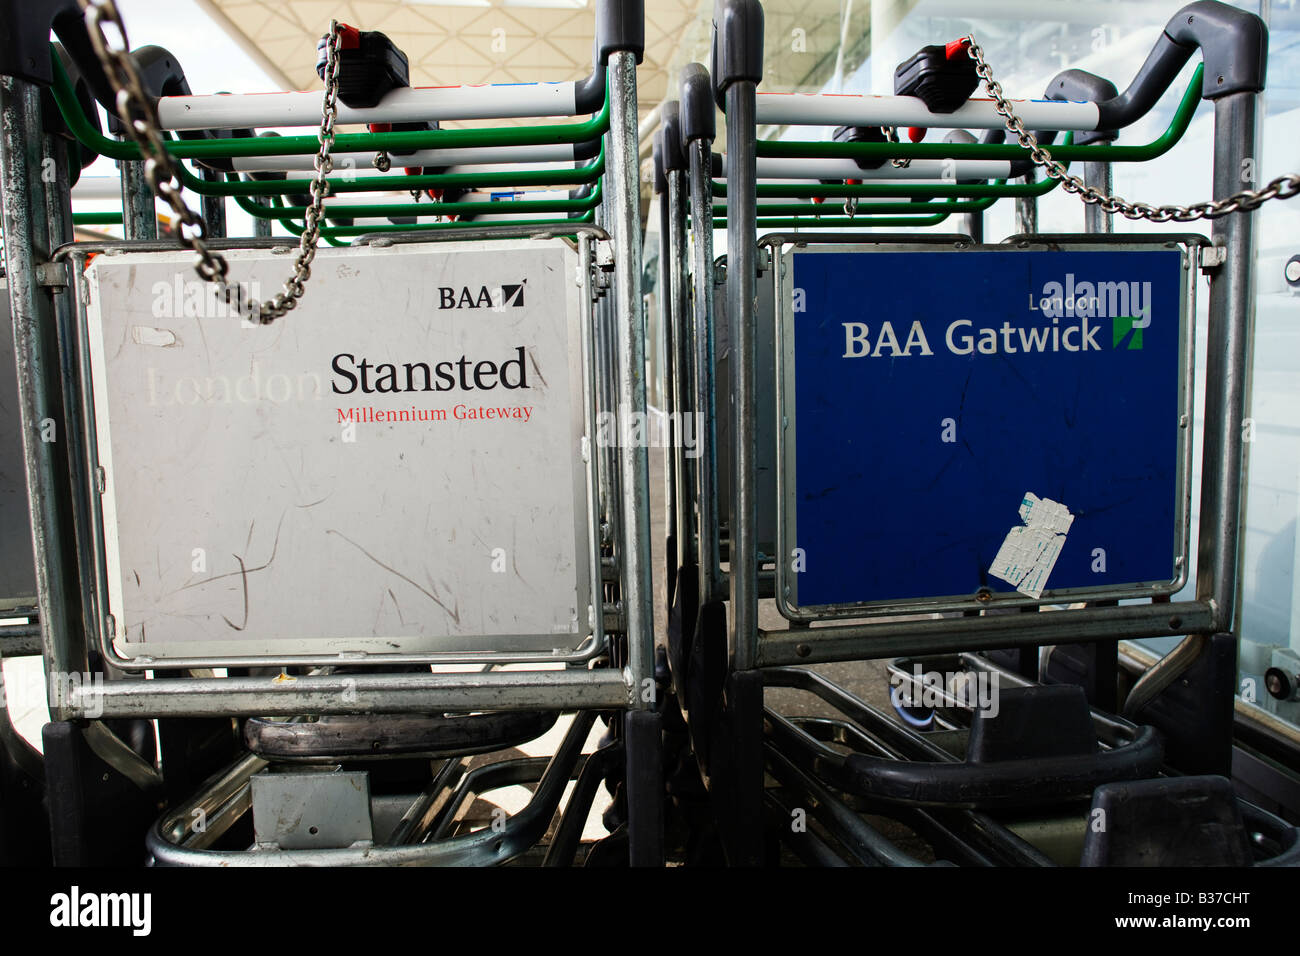 Luggage trollies from BAA run airports' London Stansted and London Gatwick - Stock Image